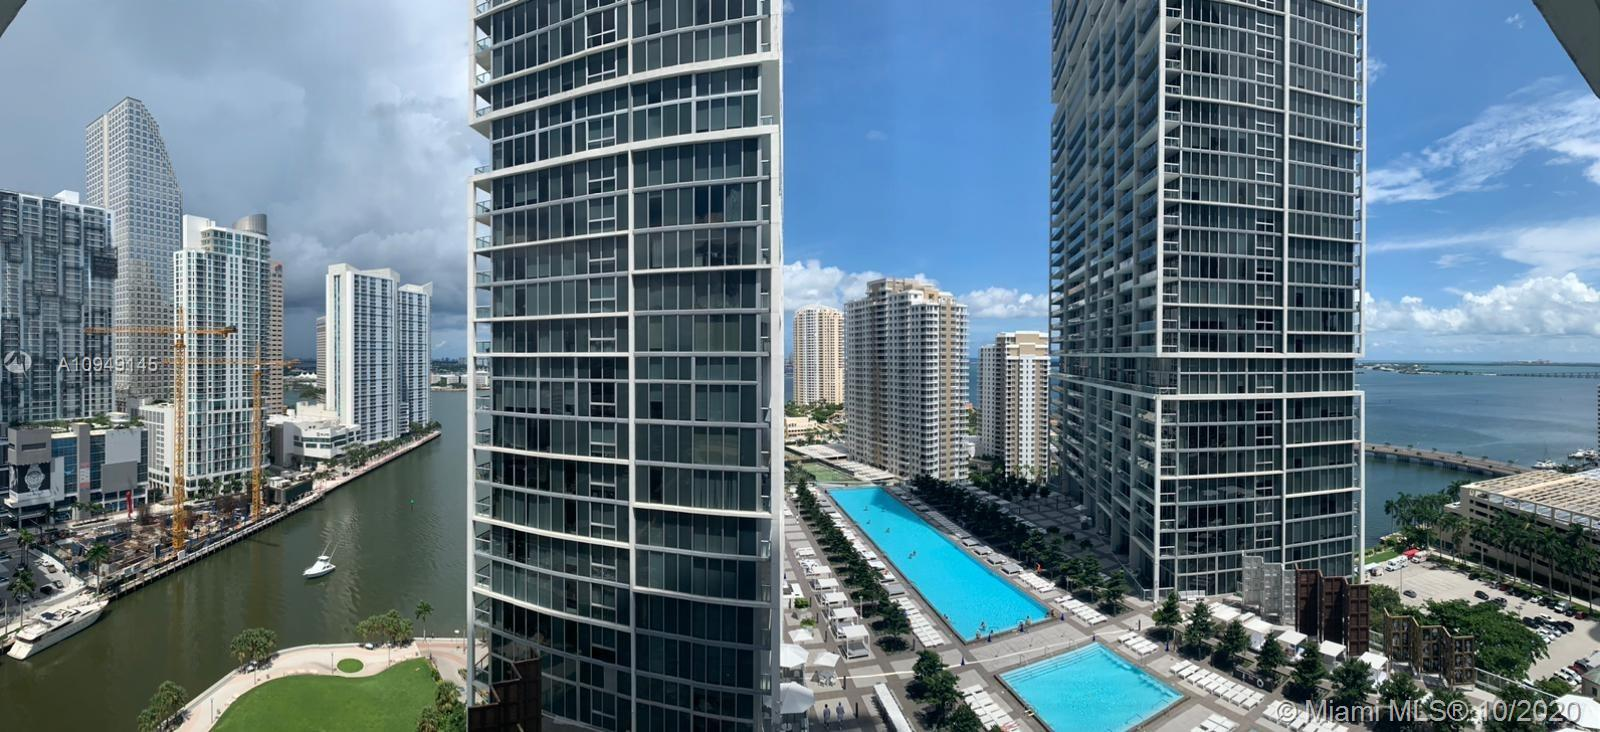 OWNER FINANCING!! EASY TO APPLY!! Downpayment:$300,000 HIGH INCOME!! PAY THE MORTGAGE+HOA+TAXES. READY FOR INVESTORS!! AIRBNB PERMIT!! THIS IS IT! BEAUTIFUL APARTMENT BAY VIEW AND SCENIC ICON POOL ....Do not miss the Opportunity to enjoy the best tourist and working location in BRICKELL JUST seconds from Downtown Miami AND MIAMI BEACHES. 1 bed/1 bath in the famous W HOTEL /Viceroy Residence, apart from enjoying a good location. Walking distance to the best restaurants and bars offered by the NEW BRICKELL CITY CENTER, Mary Brickell of Village. Incredible View of the Miami RIVER, POOL, AND OCEAN . 5 Star amenities, pool, Spa, fitness Center, Restaurant, concierge and Rooftop nightclub.